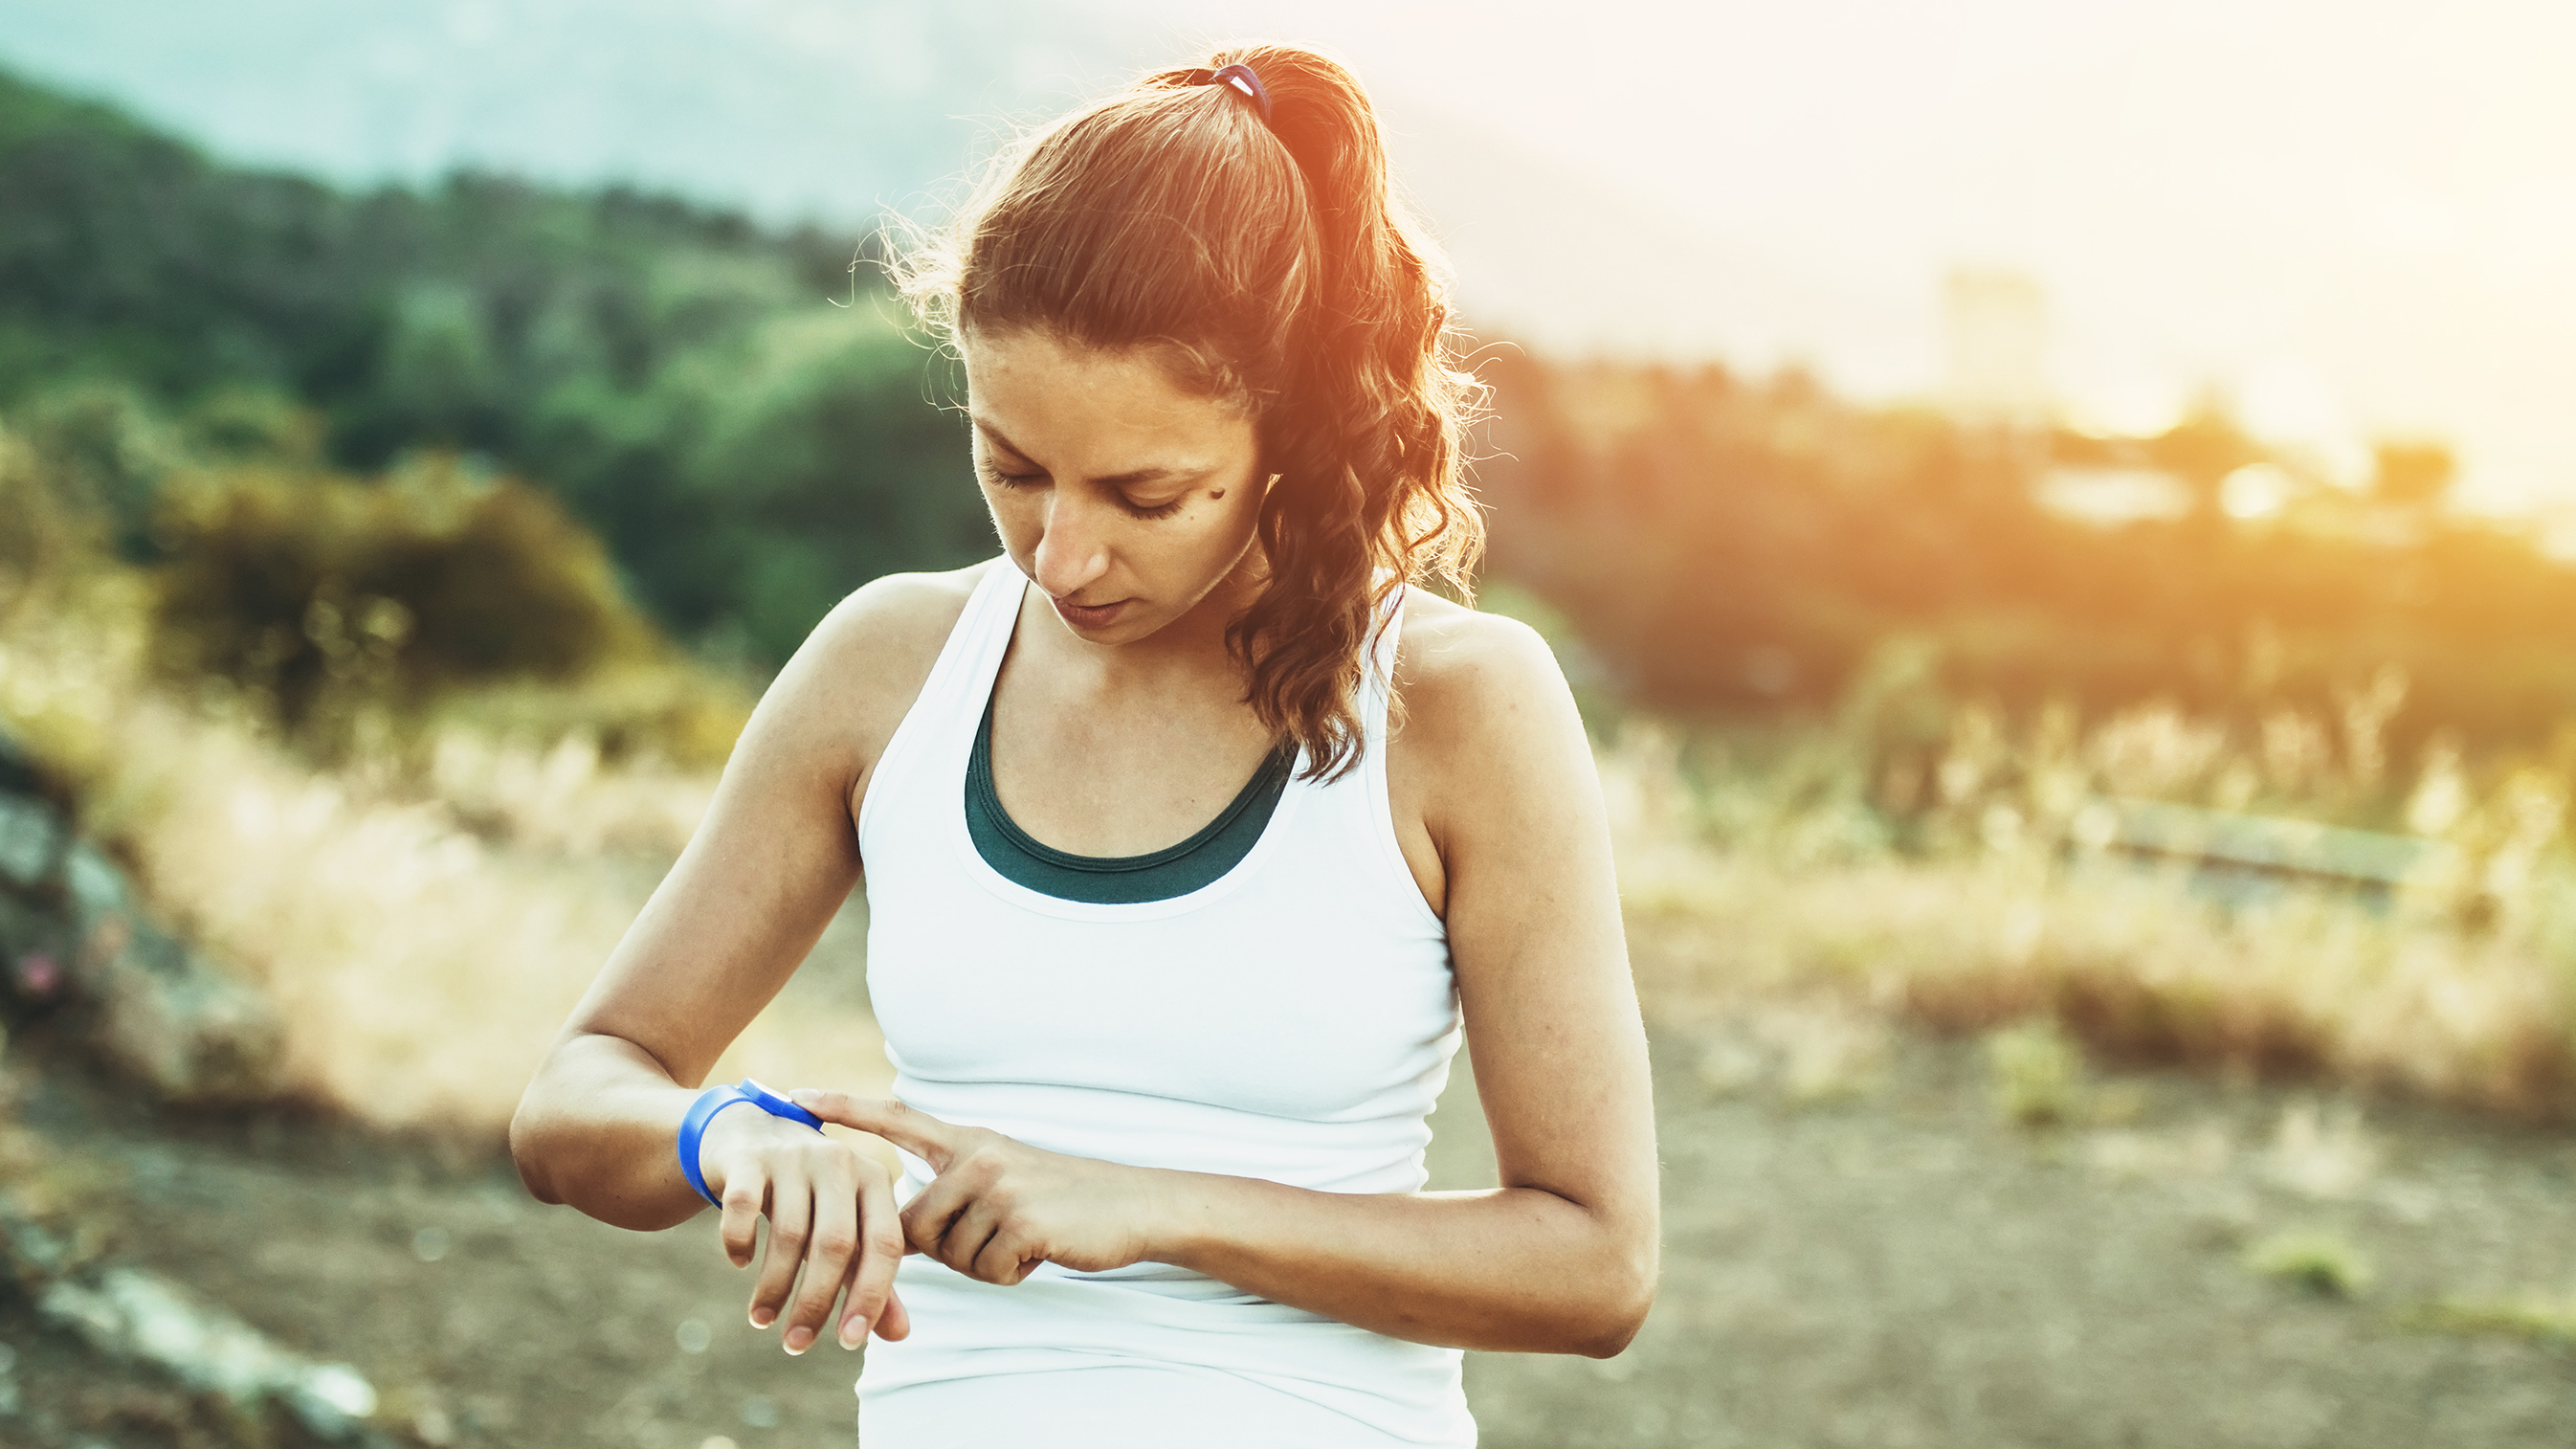 """Researchers say they found """"no evidence that the device promoted weight loss or improved blood pressure or cardiorespiratory fitness""""."""